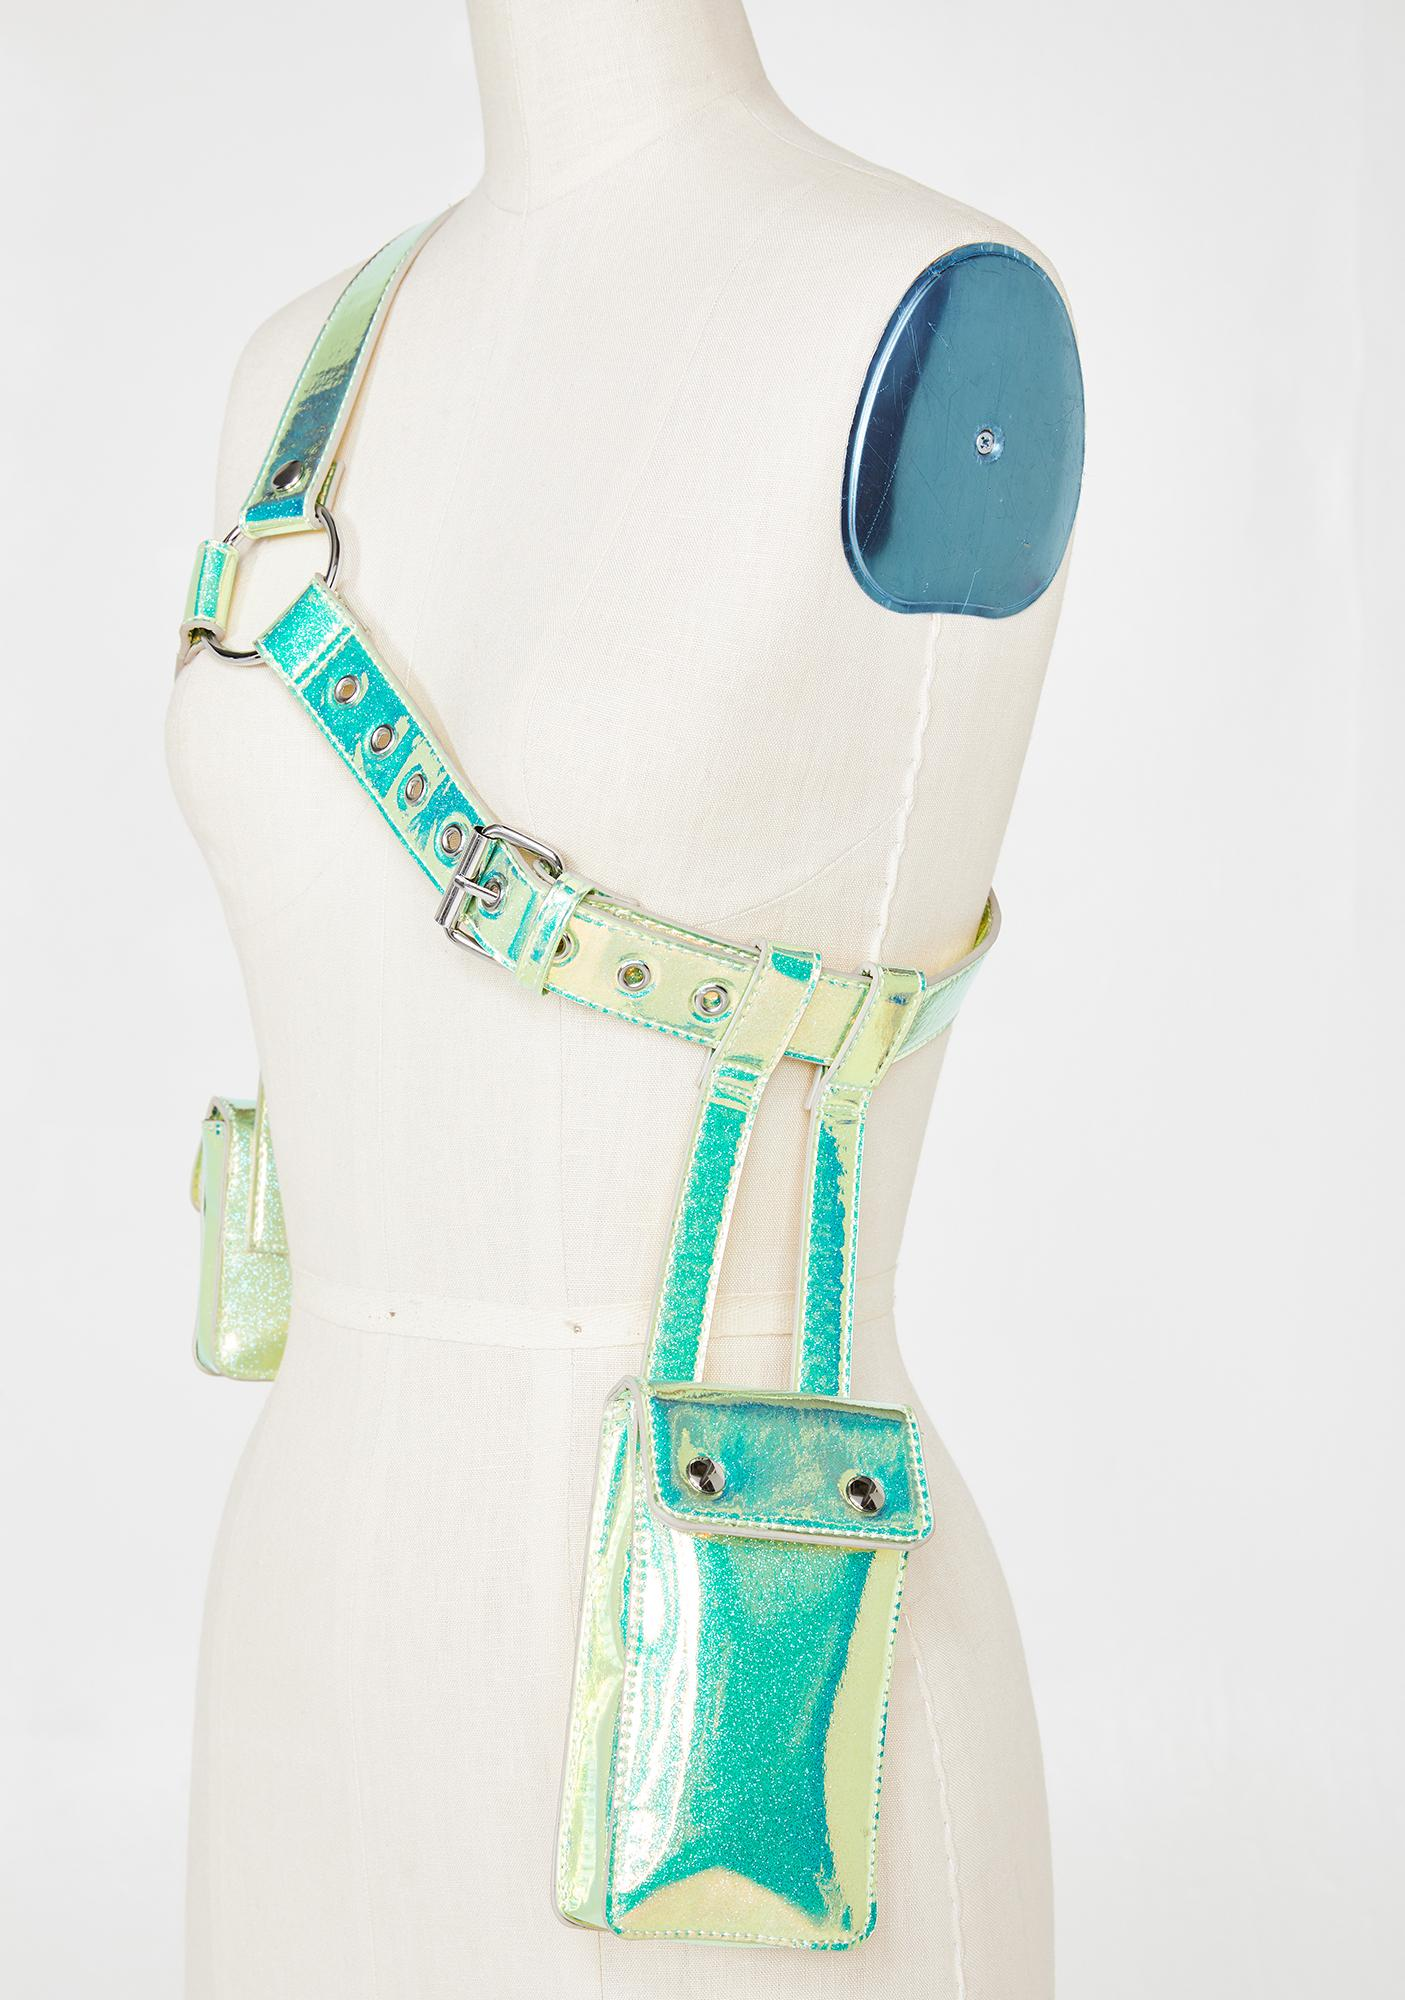 Club Exx Galactic Outlaw Glitter Harness